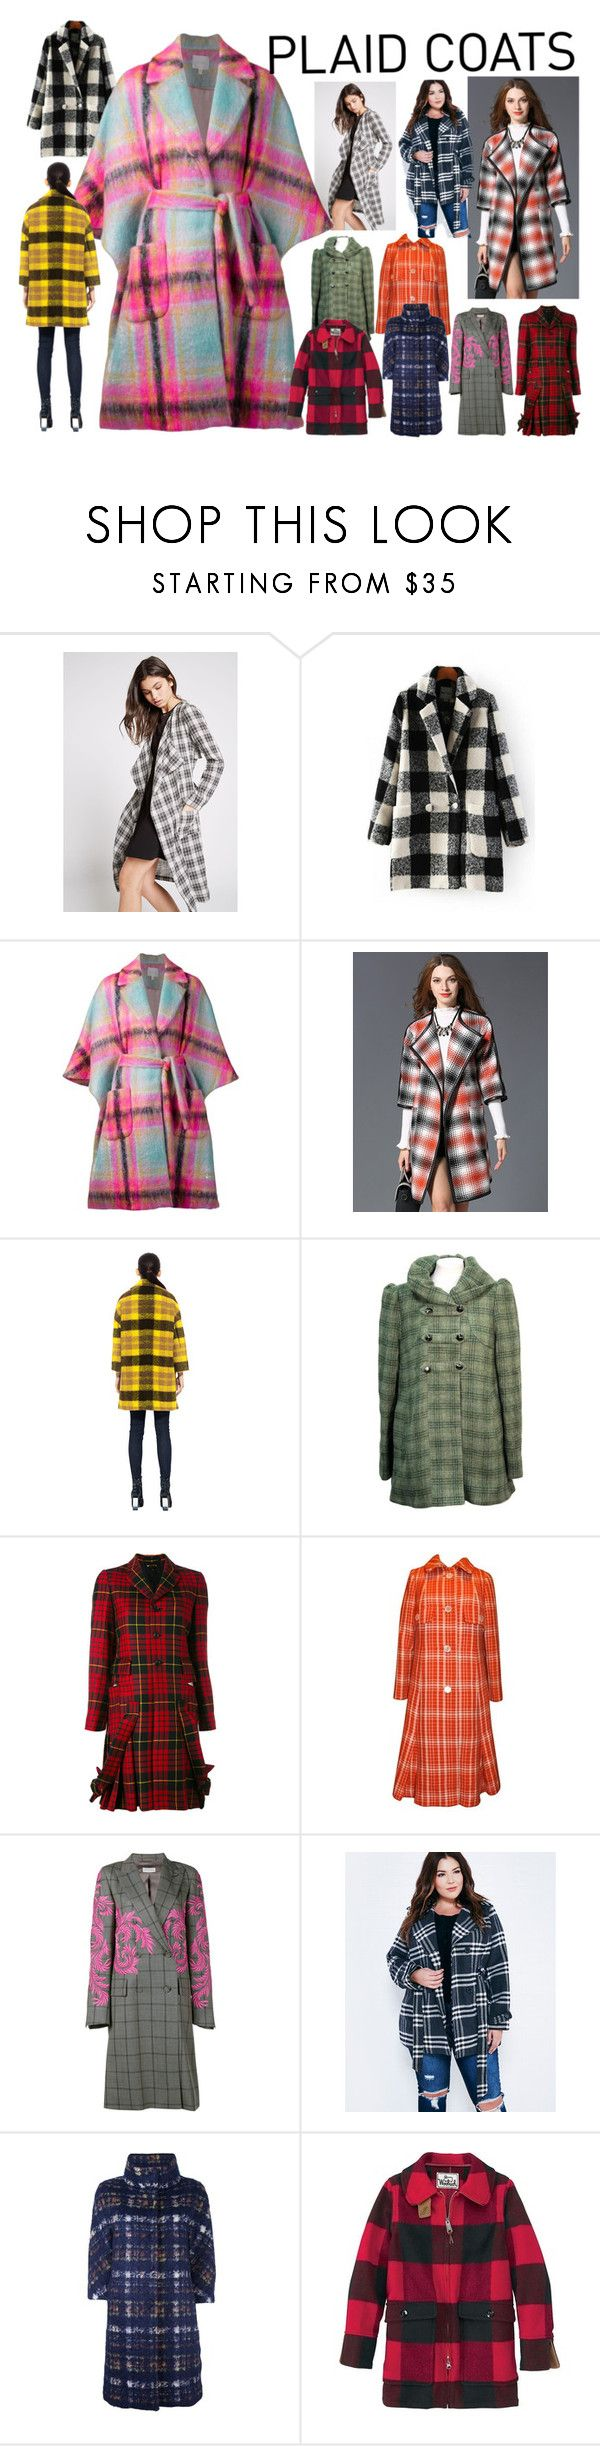 """Pattern Mix: Plaid Coats"" by curekitty ❤ liked on Polyvore featuring BCBGeneration, Delpozo, Pink Tartan, French Connection, Comme des Garçons, Jean Patou, Dries Van Noten, Wet Seal, Herno and Woolrich"